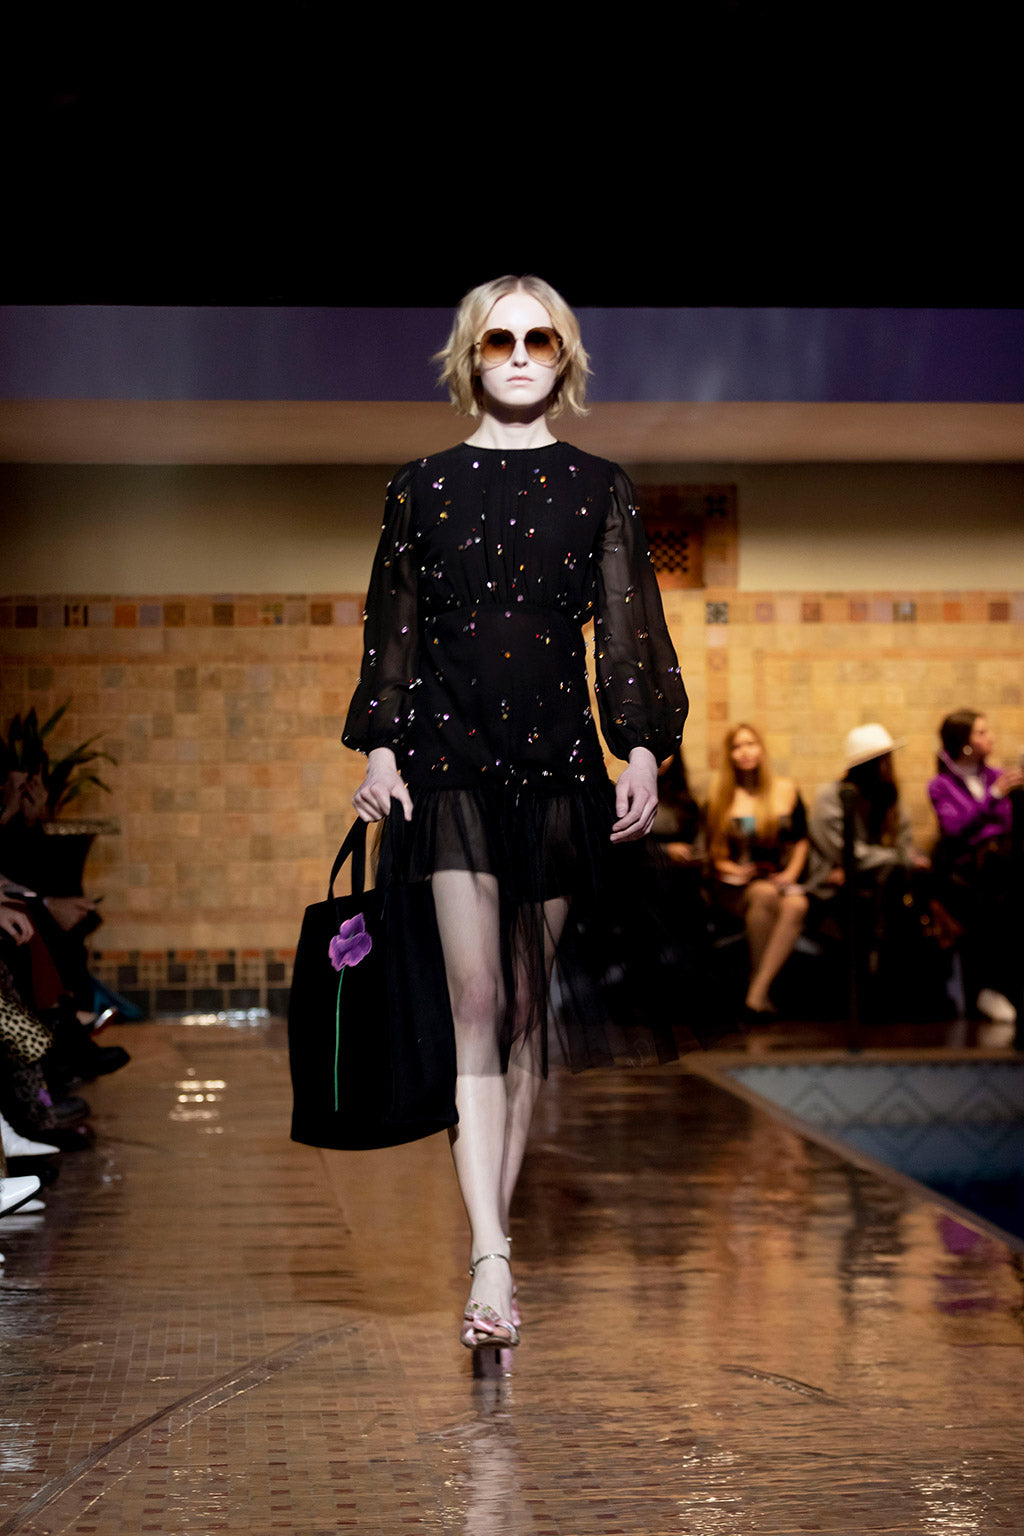 Cynthia Rowley Fall 2019 look 7 featuring a mini dress with long sheer sleeves, multi-colored embellishments, and a tulle bottom